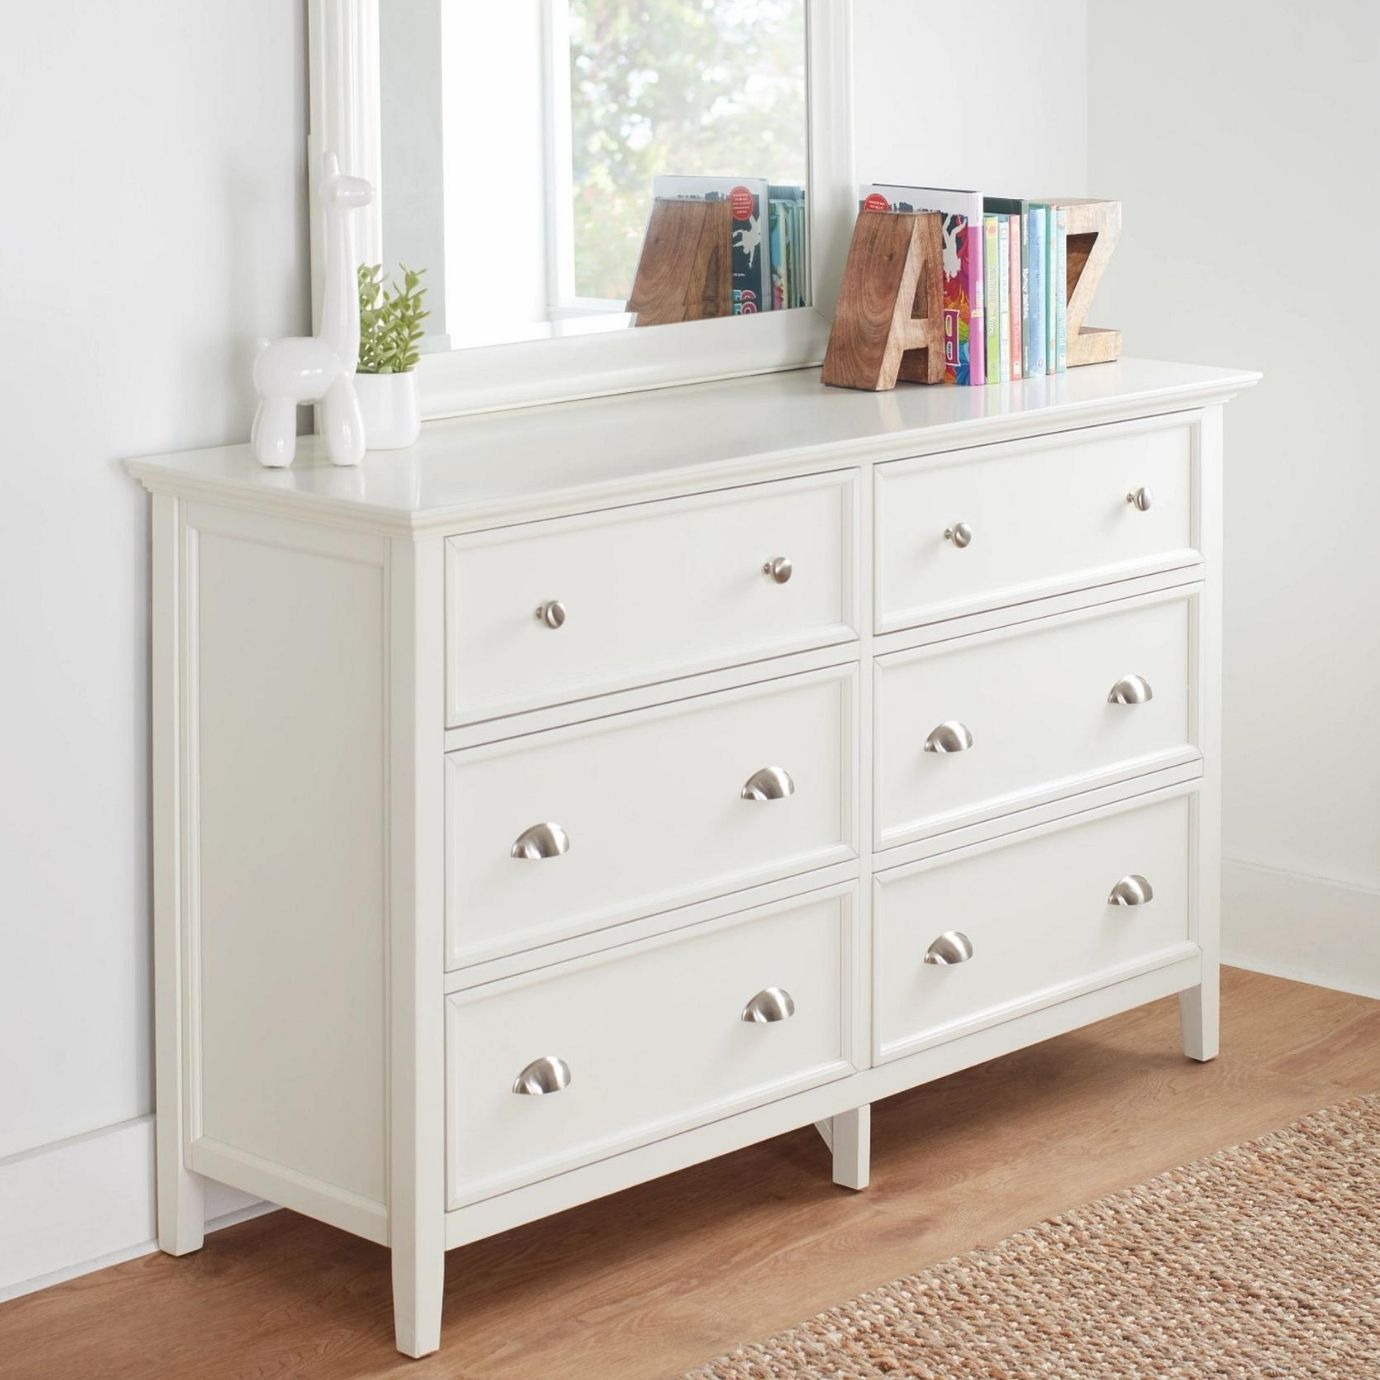 Shop Kids Dressers and Mirrors